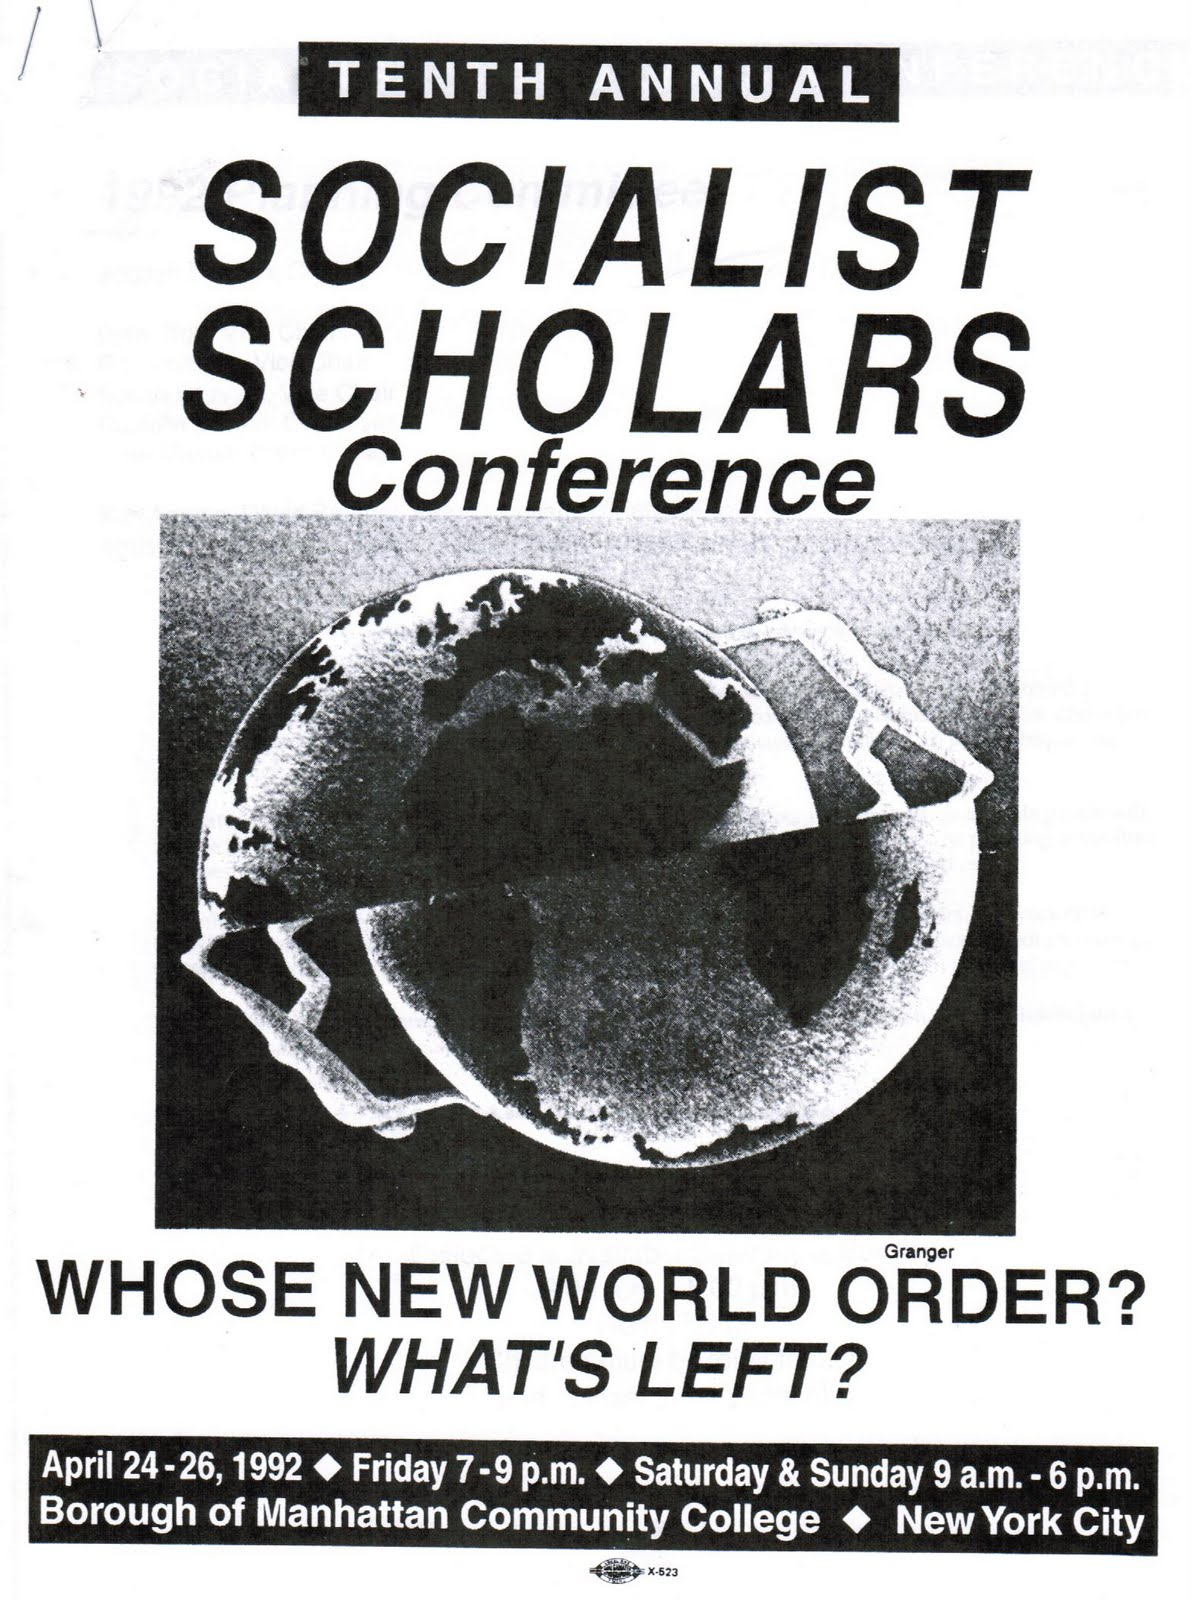 degrees of socialism For over ninety years, social work education has been offered to students at missouri's premier public institution the school is proud of its grass roots history: an early pioneer of social work education in 1906, a founding member of the original accrediting body for social work education in 1919, an institution advancing research and scholarship throughout the 20th century, and finally .